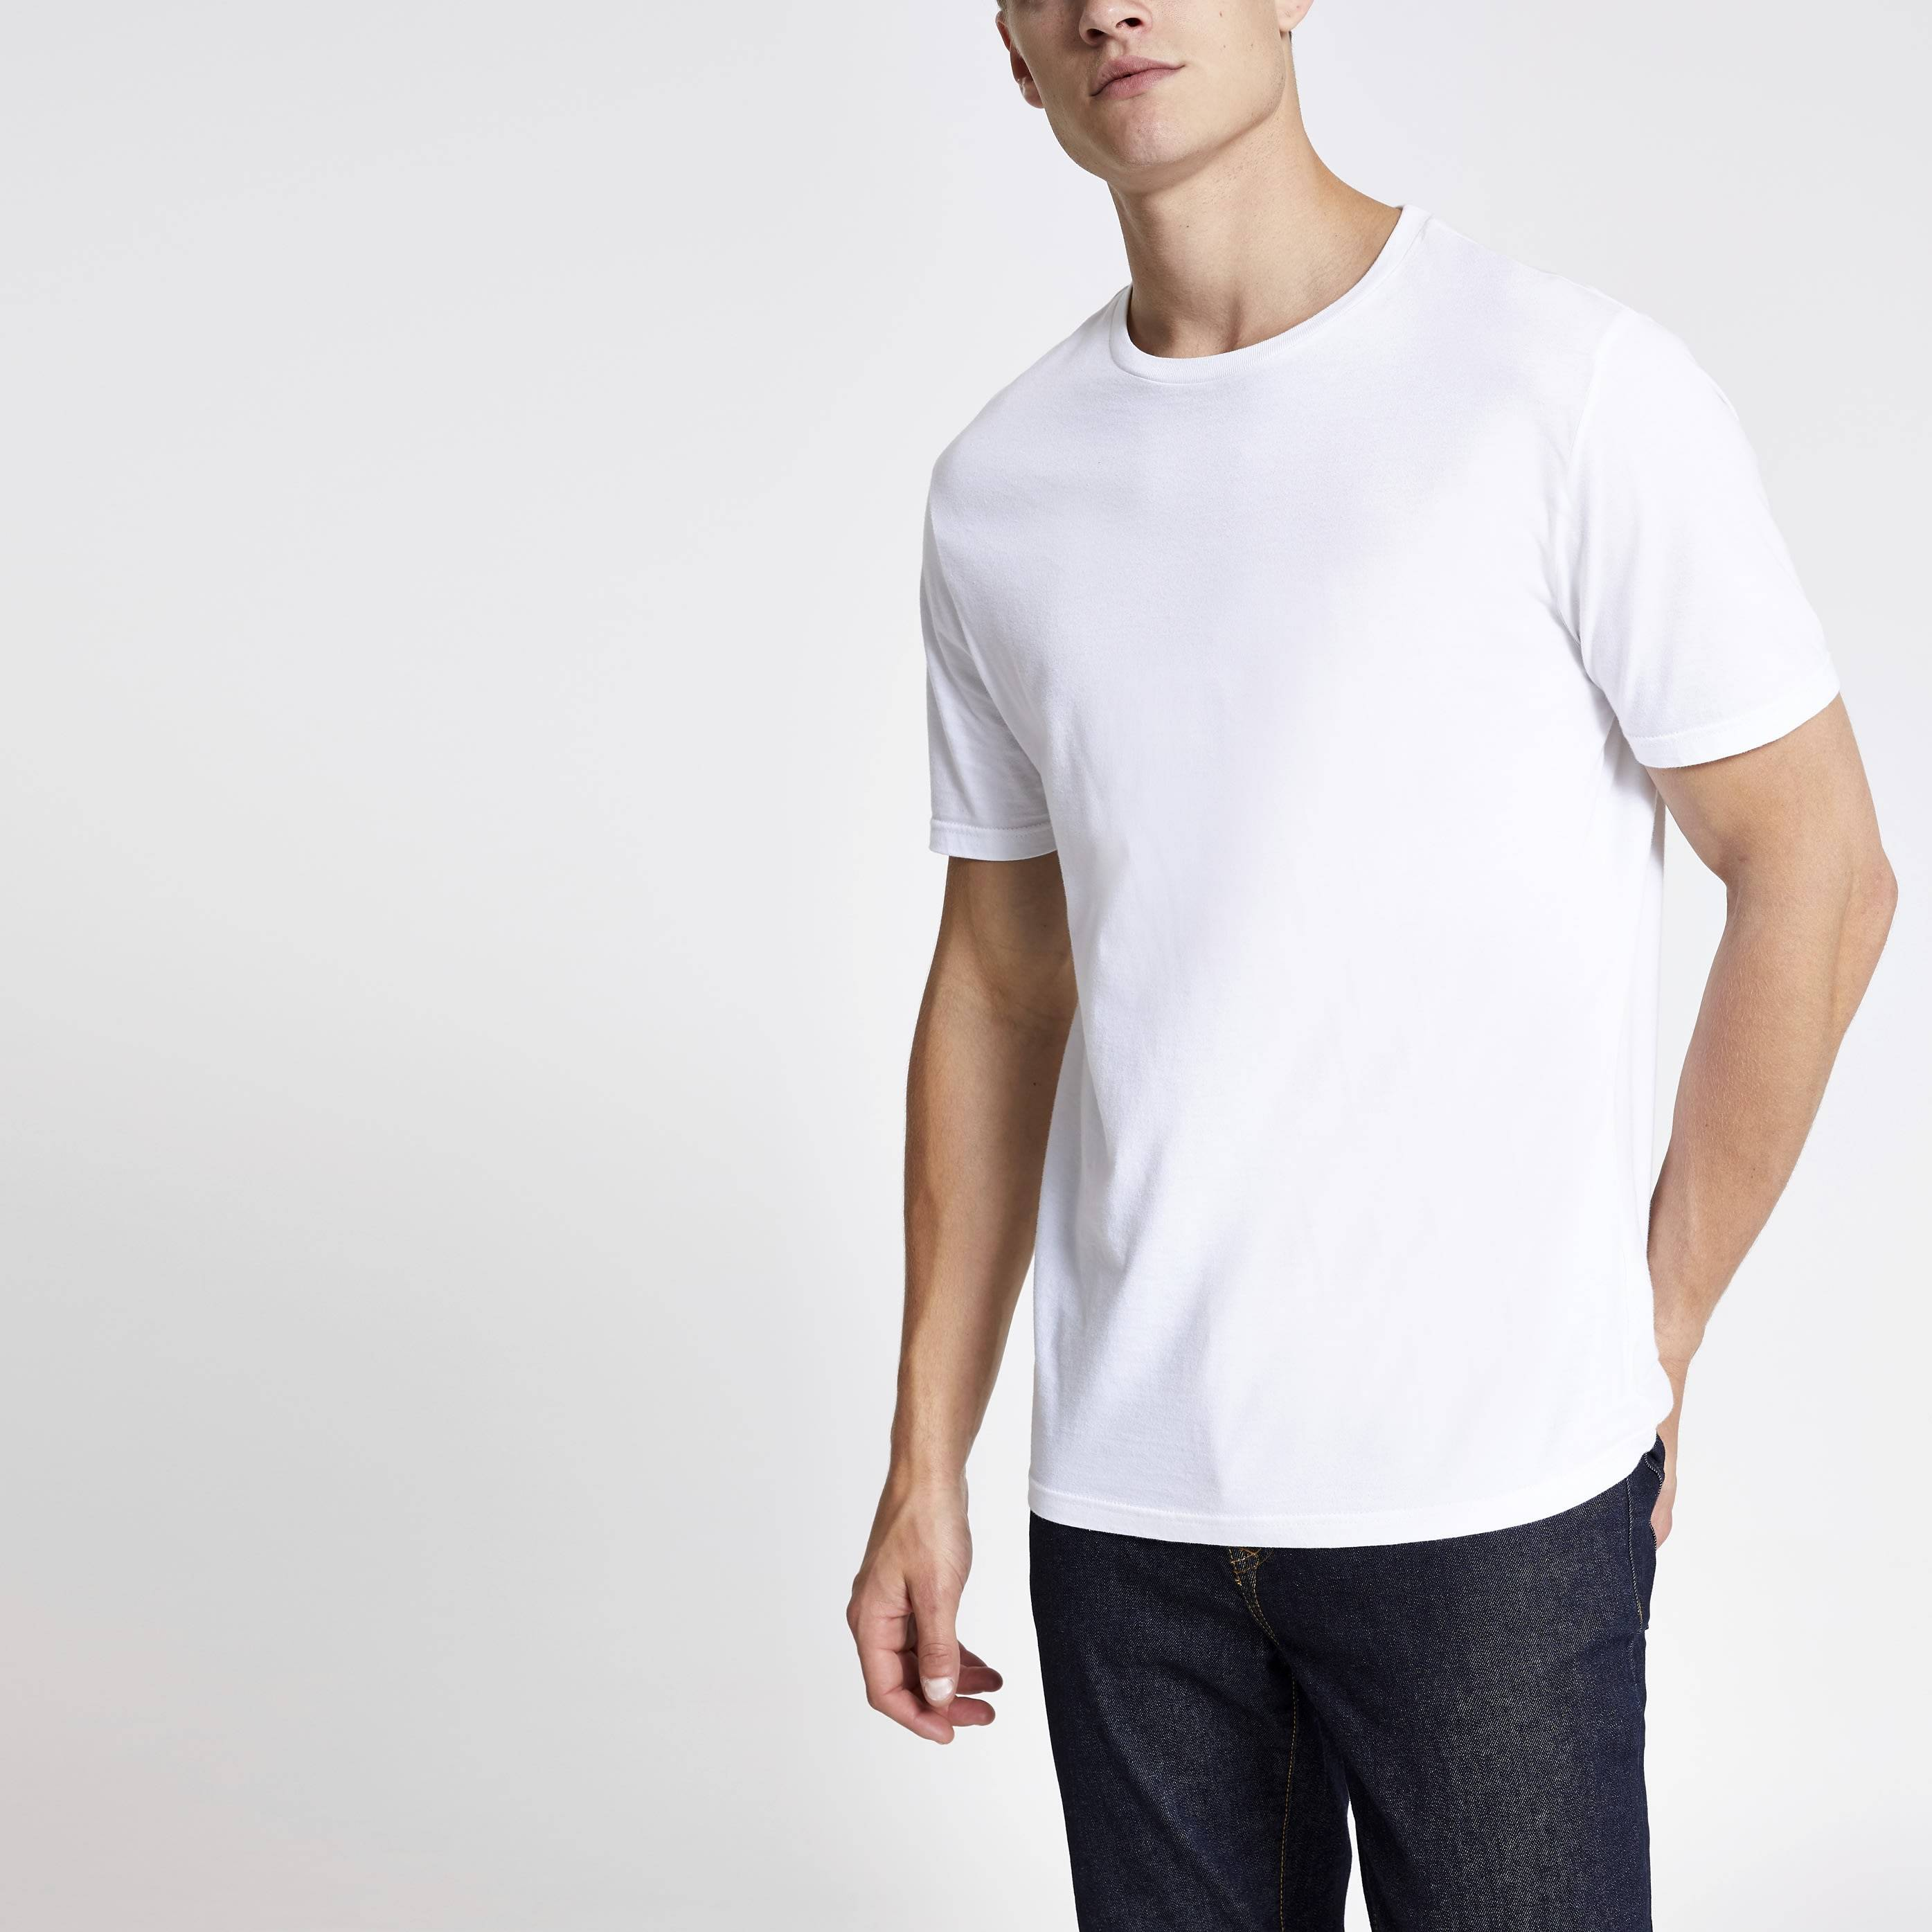 River Island Mens White slim fit crew neck T-shirt (XL)